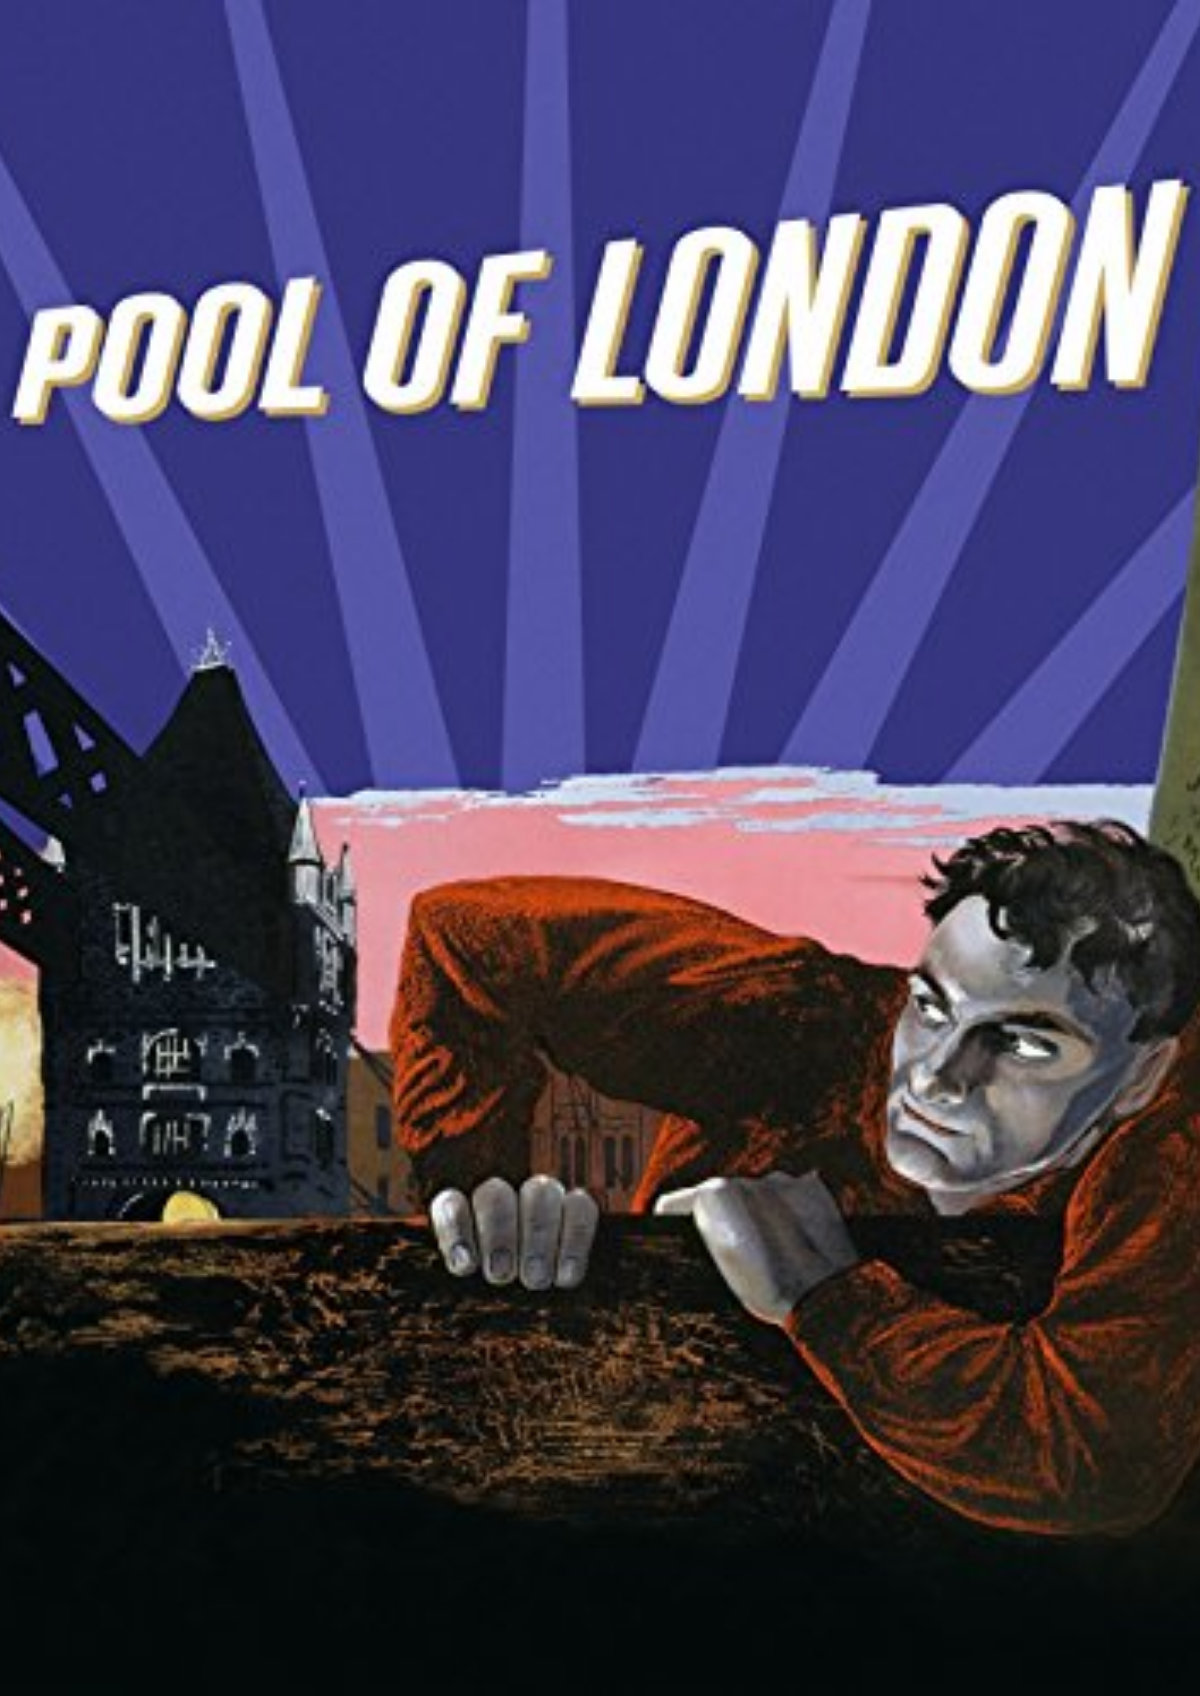 'Pool Of London' movie poster